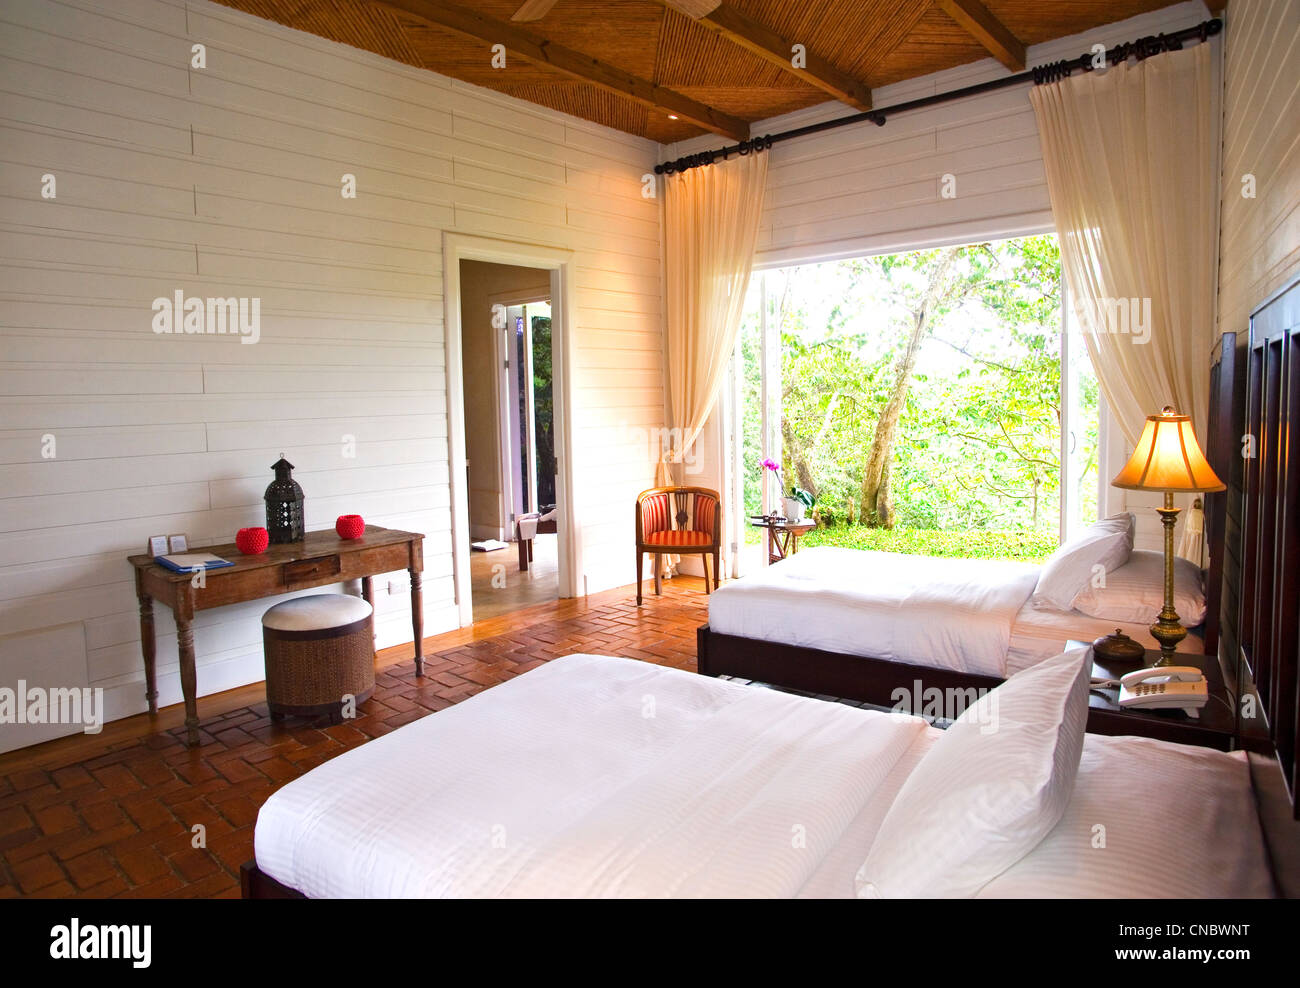 A room at asclepios in costa rica - Stock Image